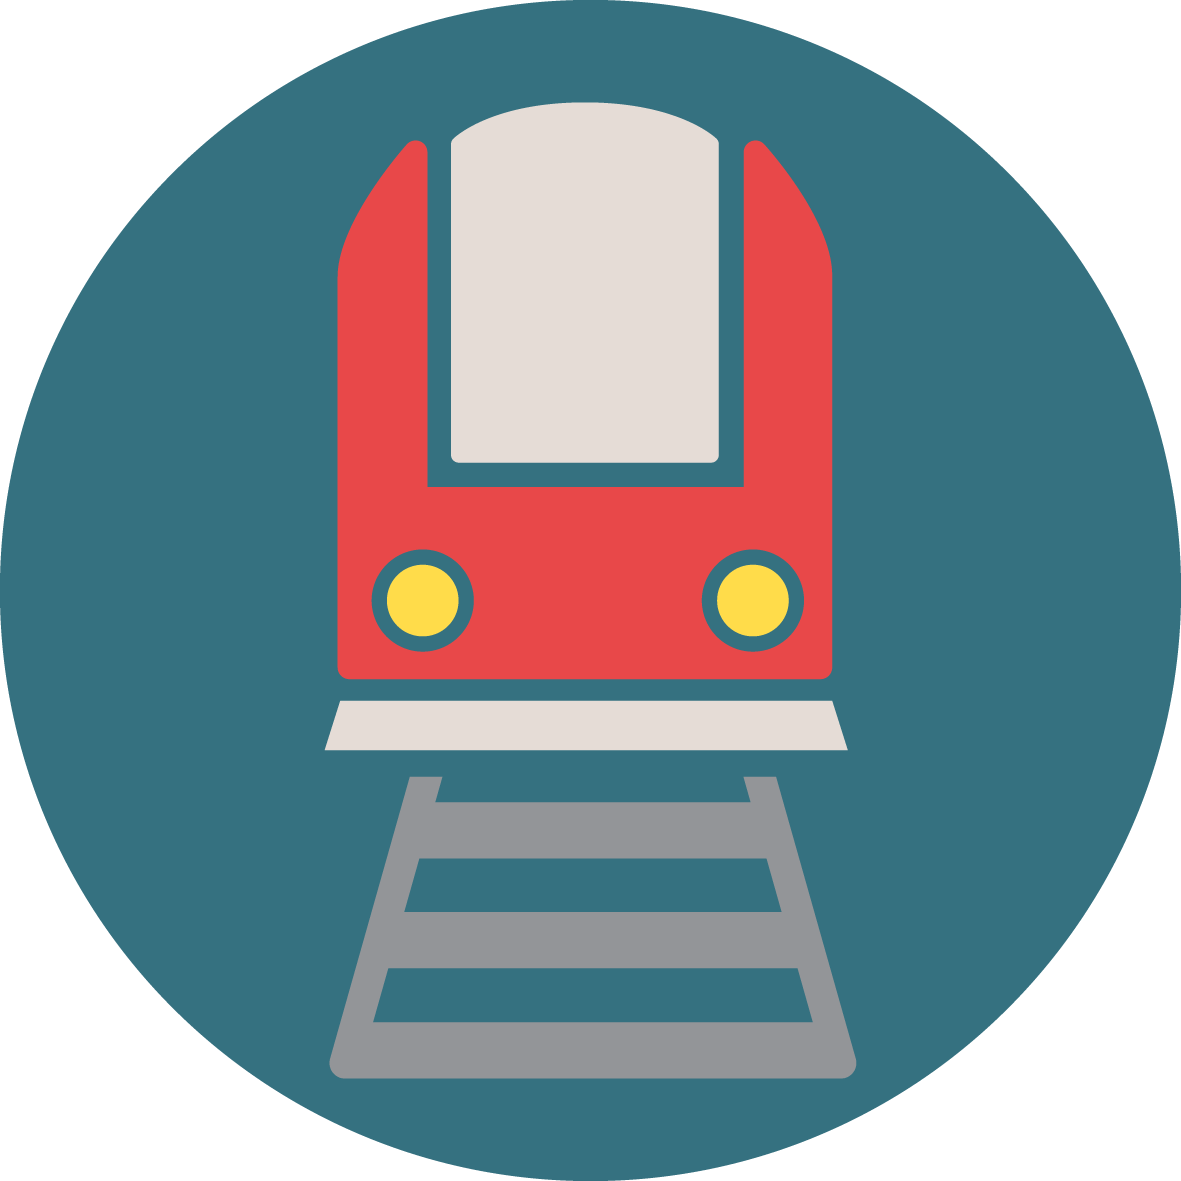 public_transportations_icon.png